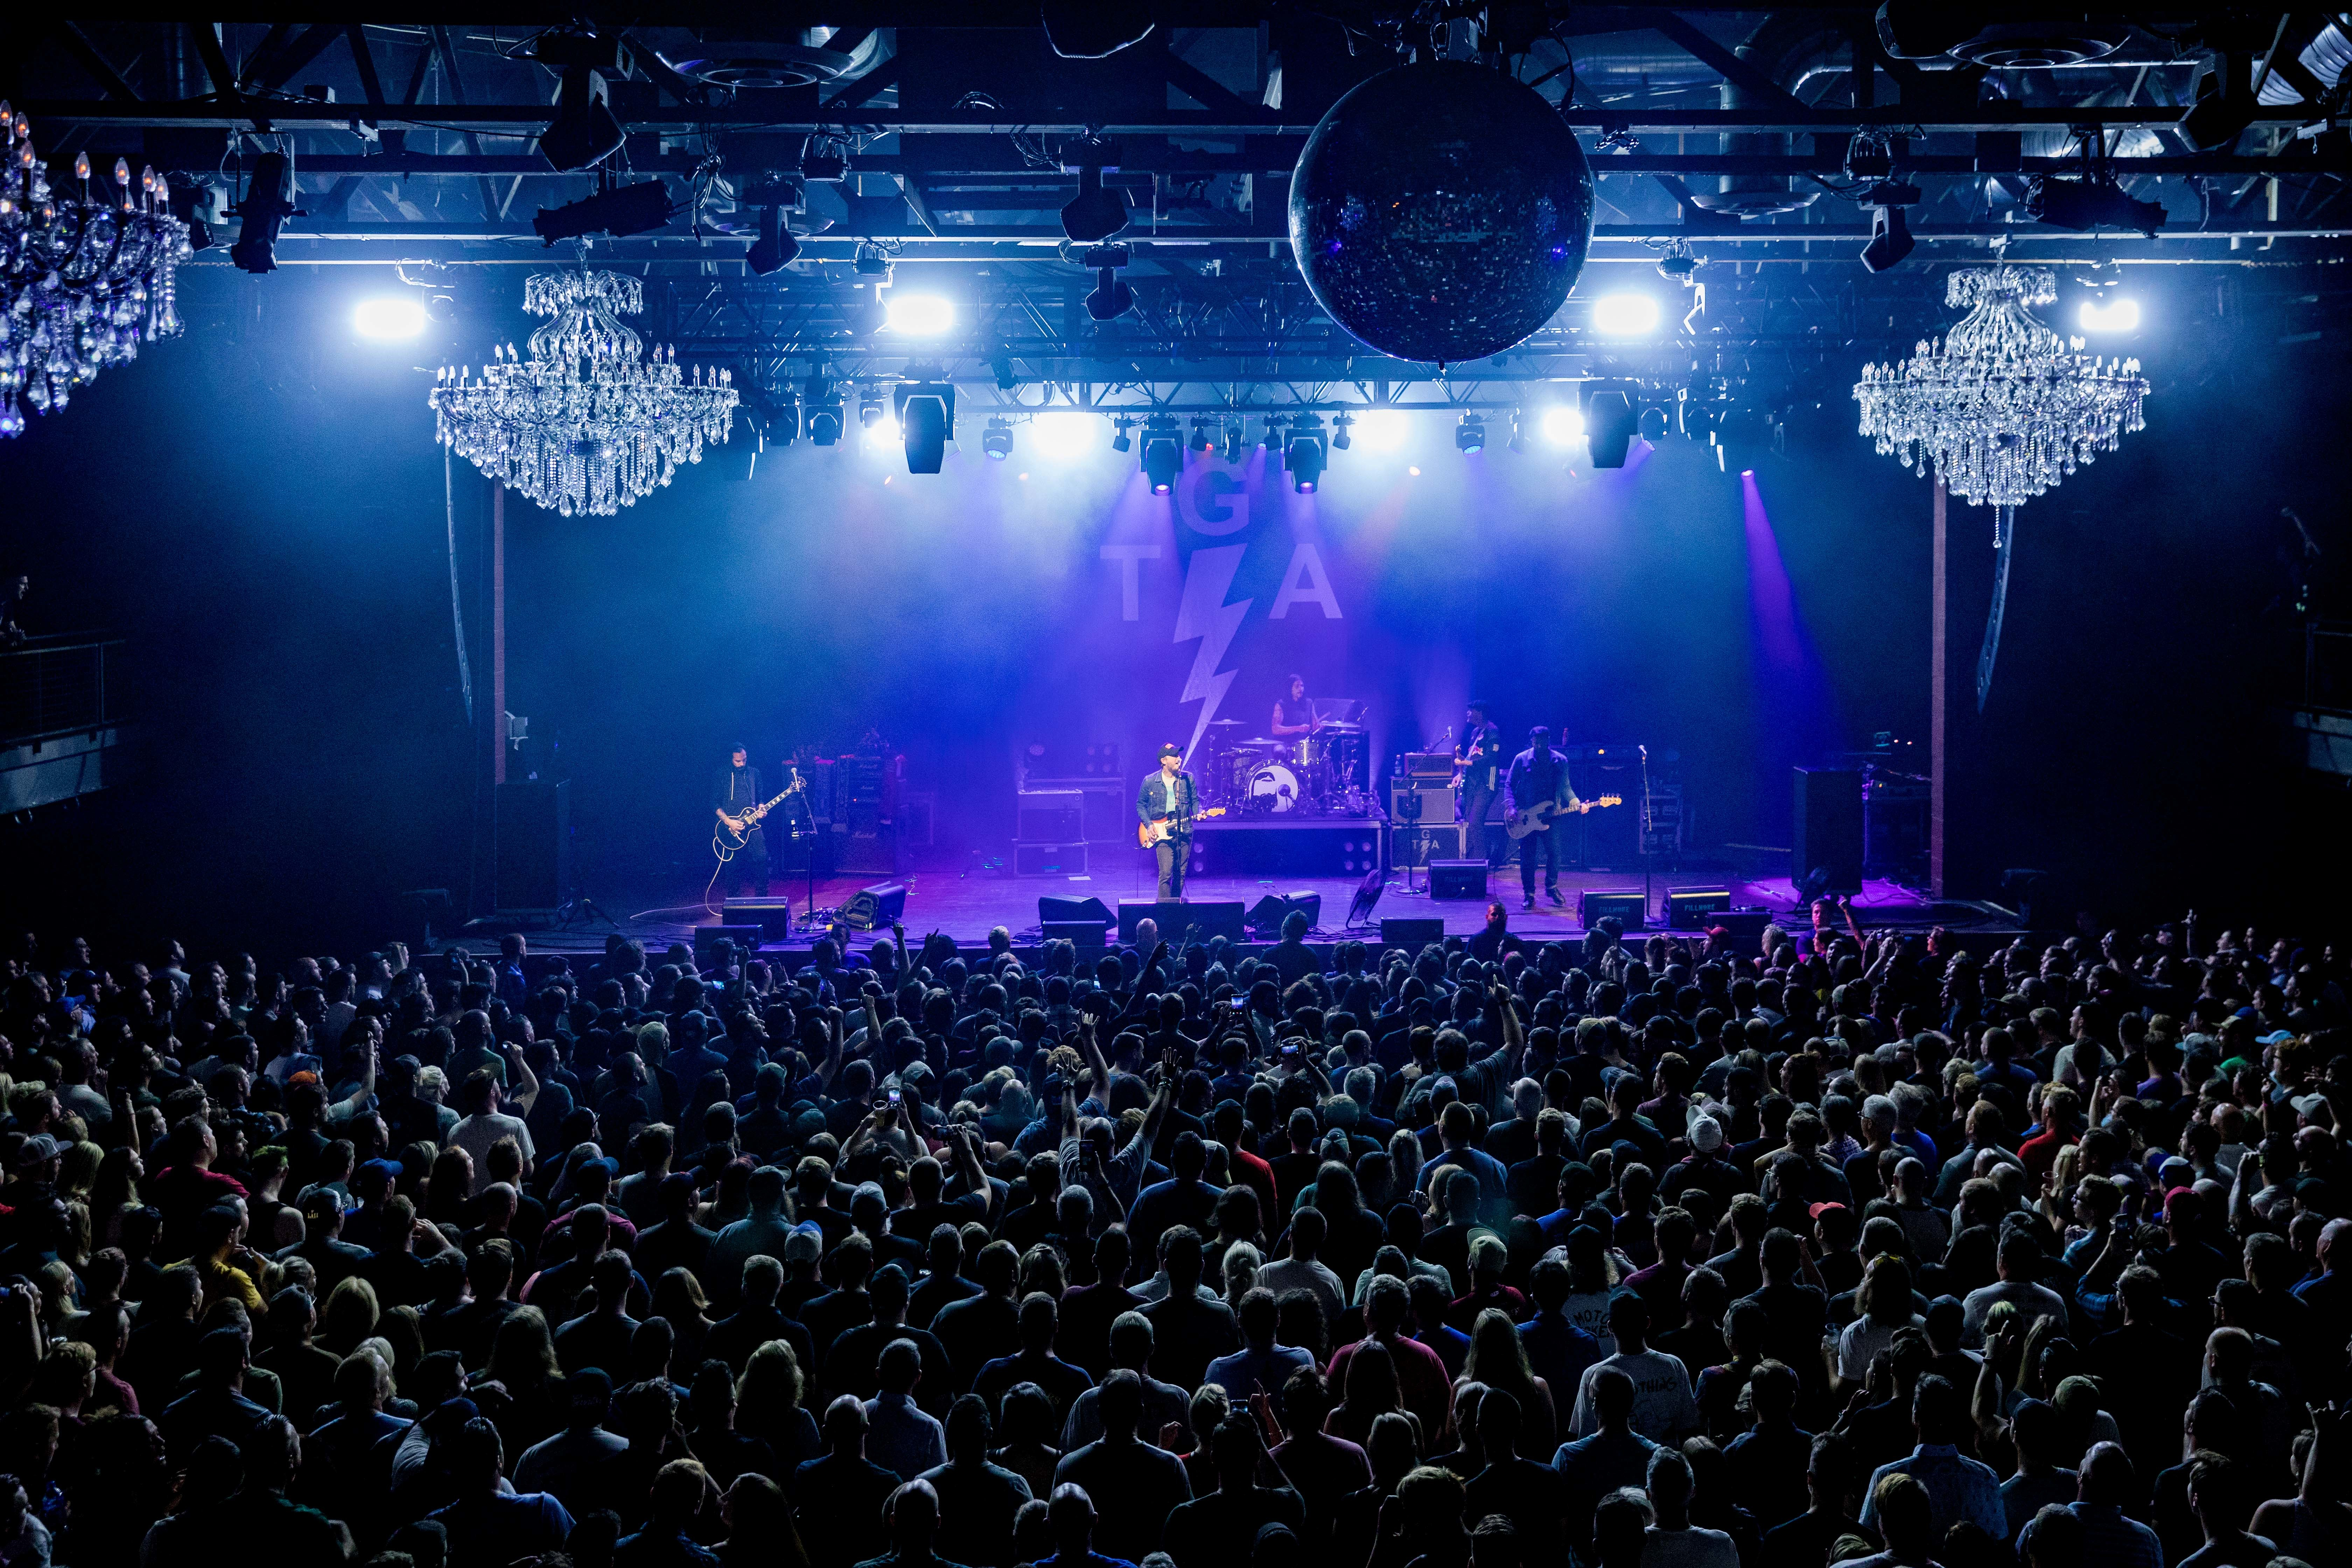 """Brian Fallon performs with New Jersey band Gaslight Anthem at their soldout Fillmore show on August 15, 2018. The band is celebrating the tenth anniversary of their sophomore album """"The '59 Sound."""" (ED NEWTON / For the Inquirer)"""